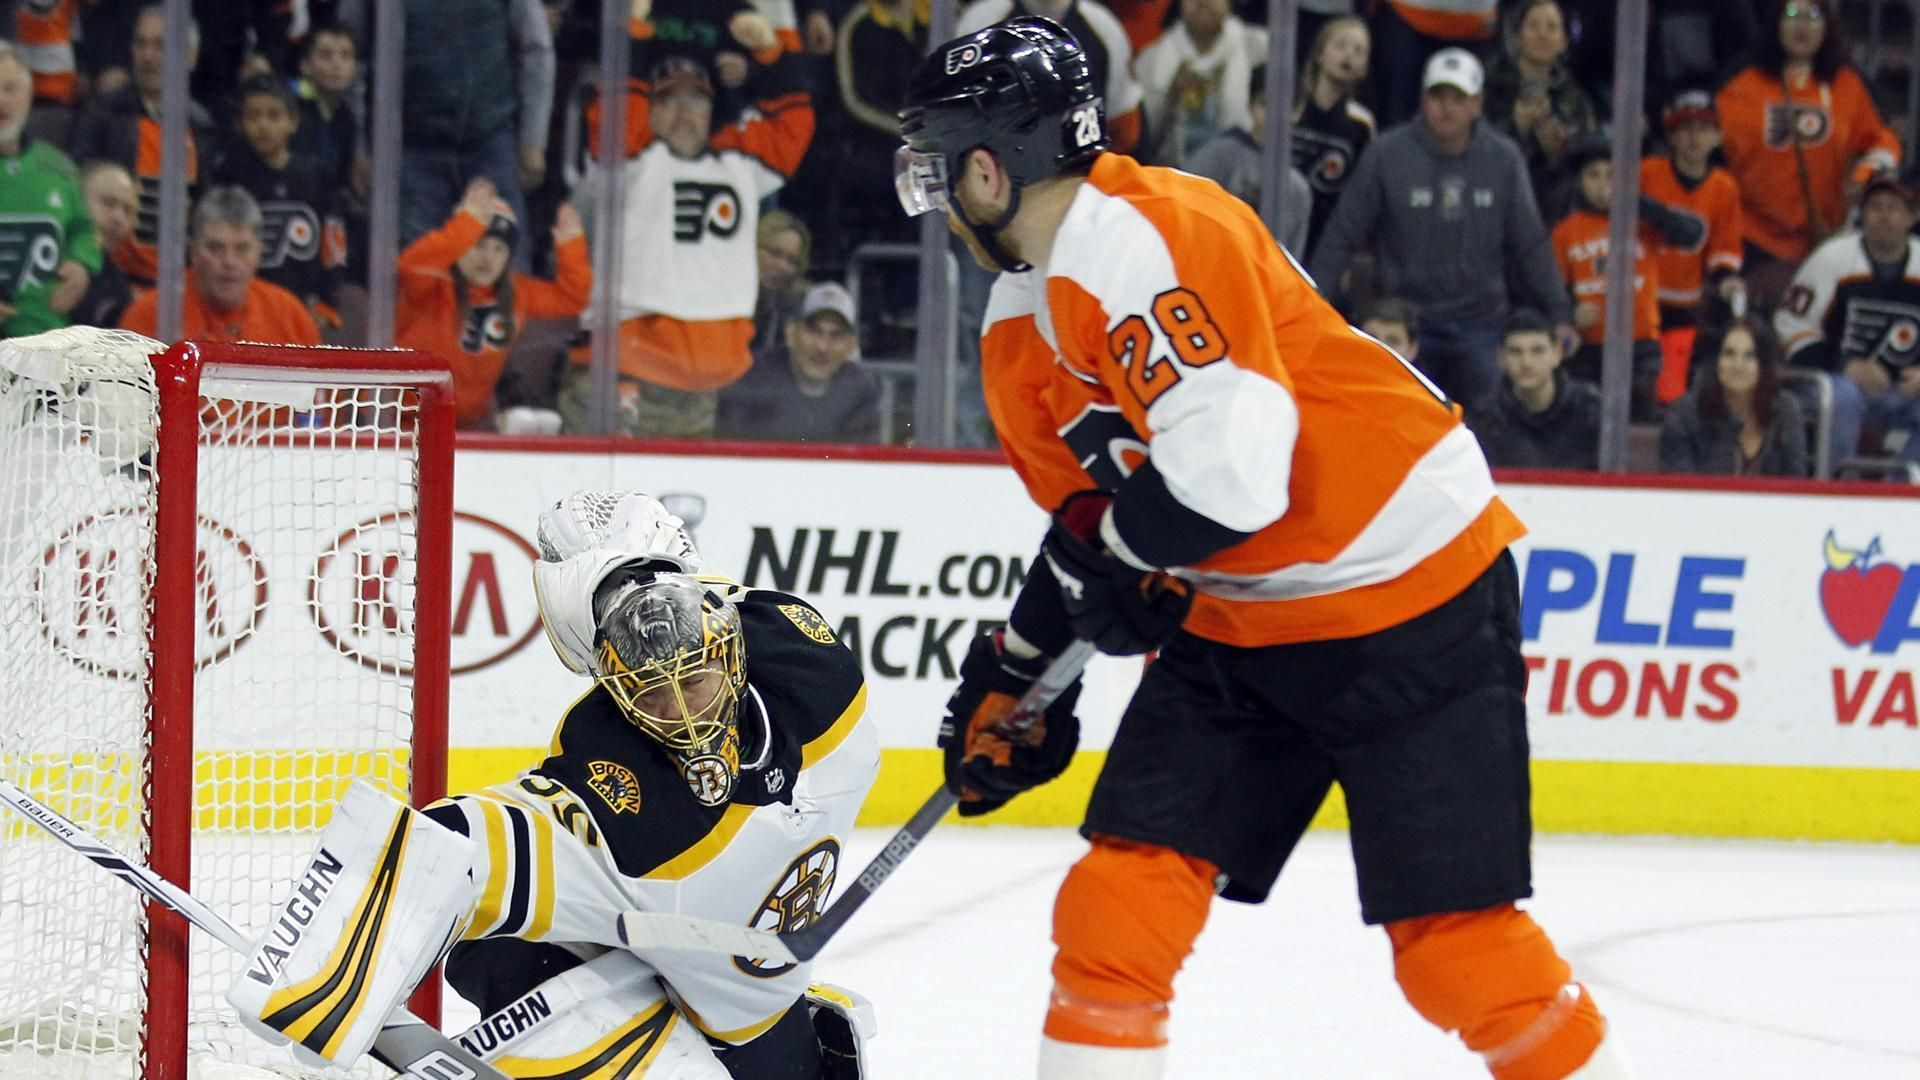 Bruins Claw Out A Point In Overtime Loss To Flyers The Boston Globe Boston Bruins Goalies Bruins Boston Bruins